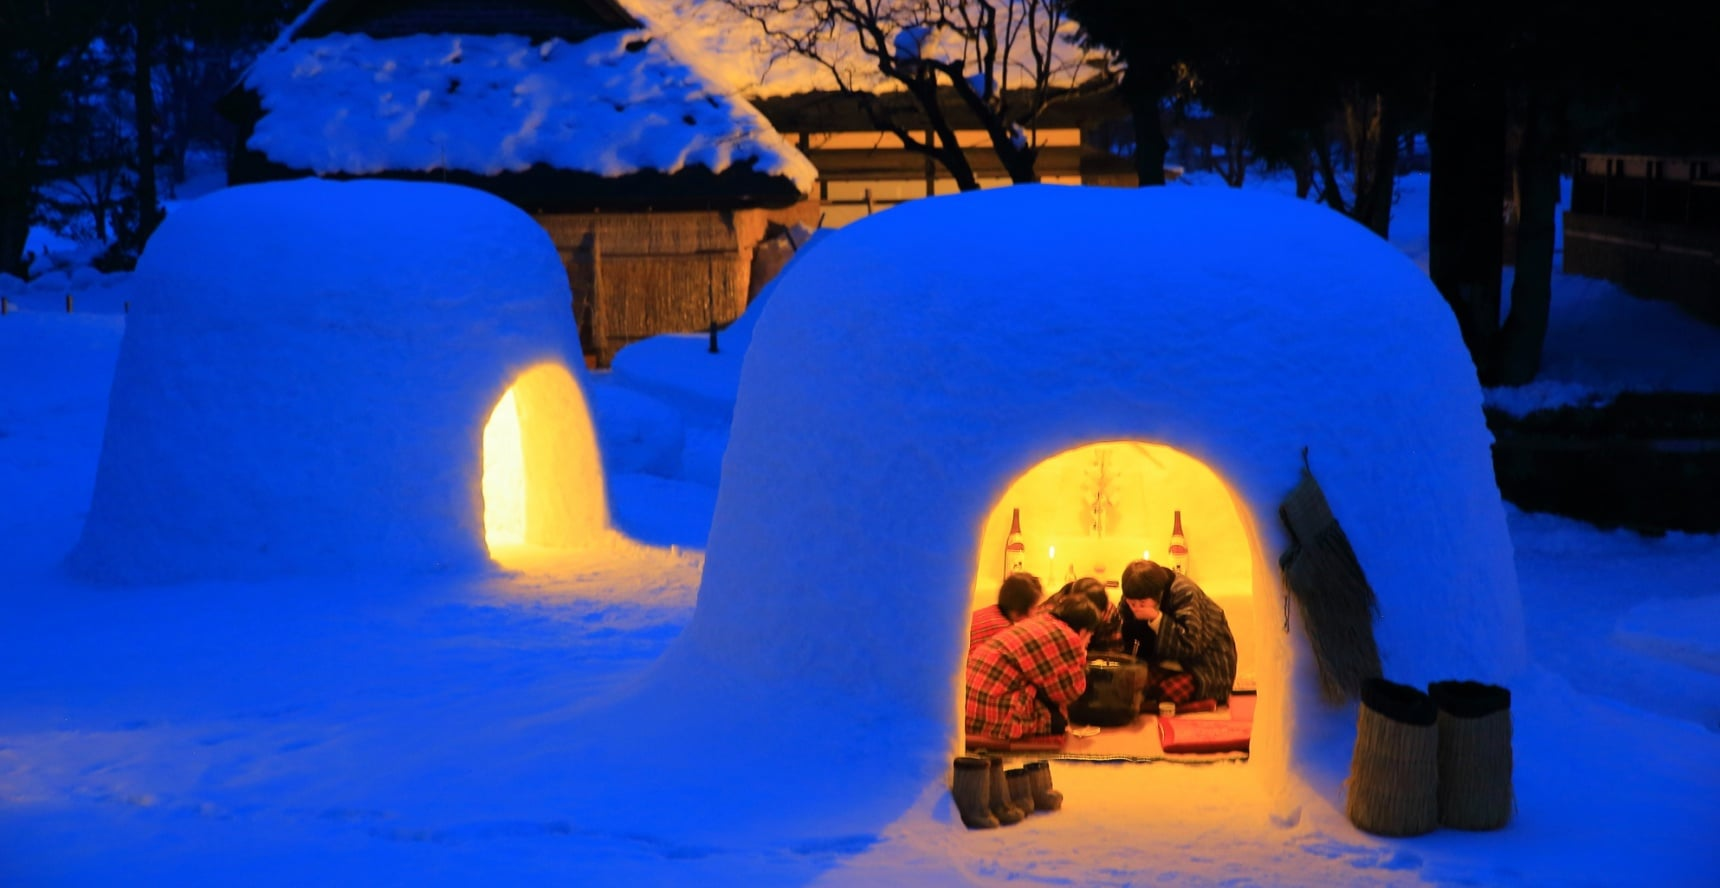 How to Build a Full-Scale Japanese Igloo